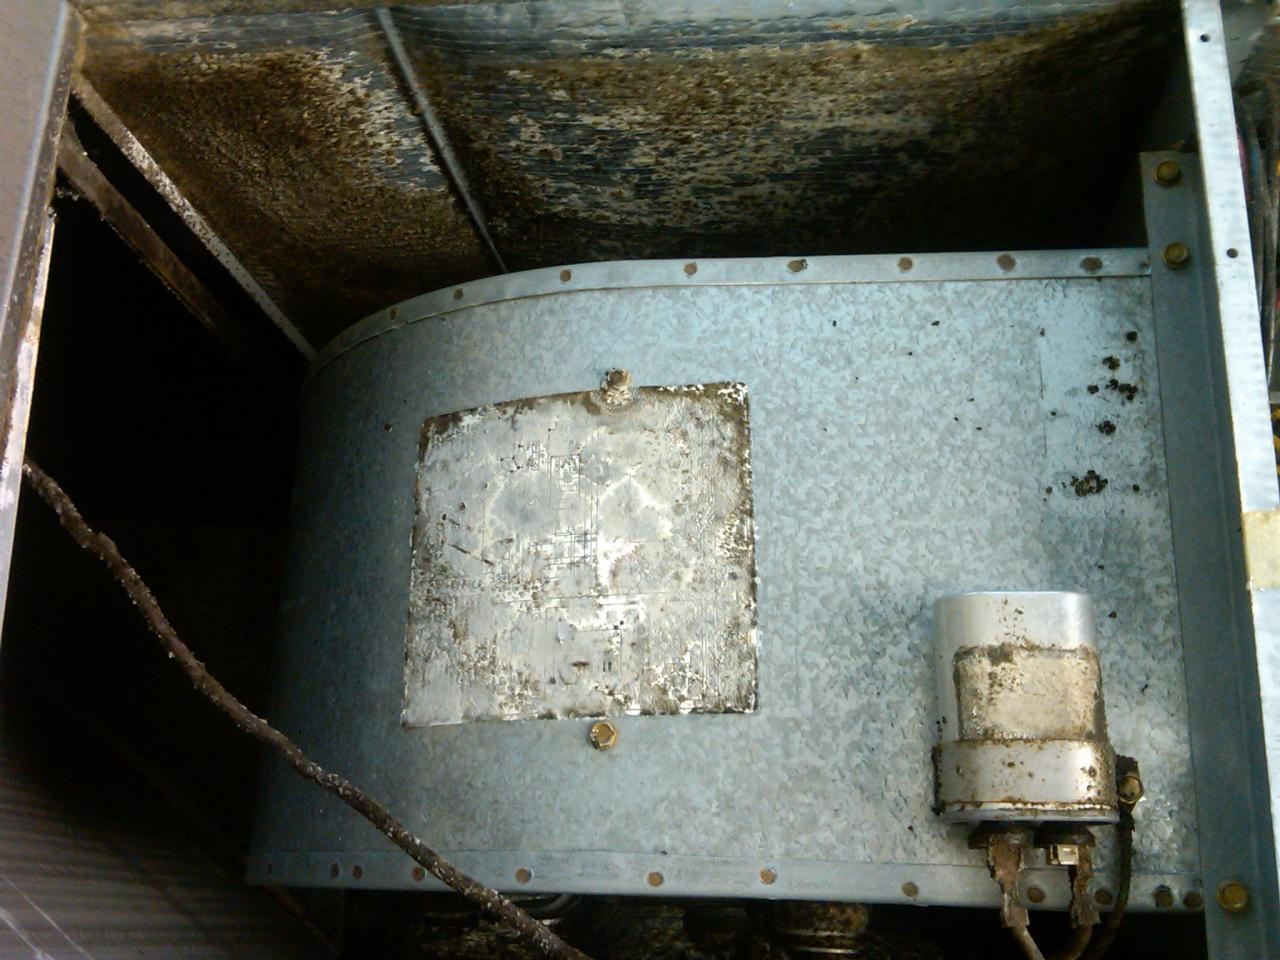 Overhead view of another blower, notice the silver insulation on either side of it is growing a mold.